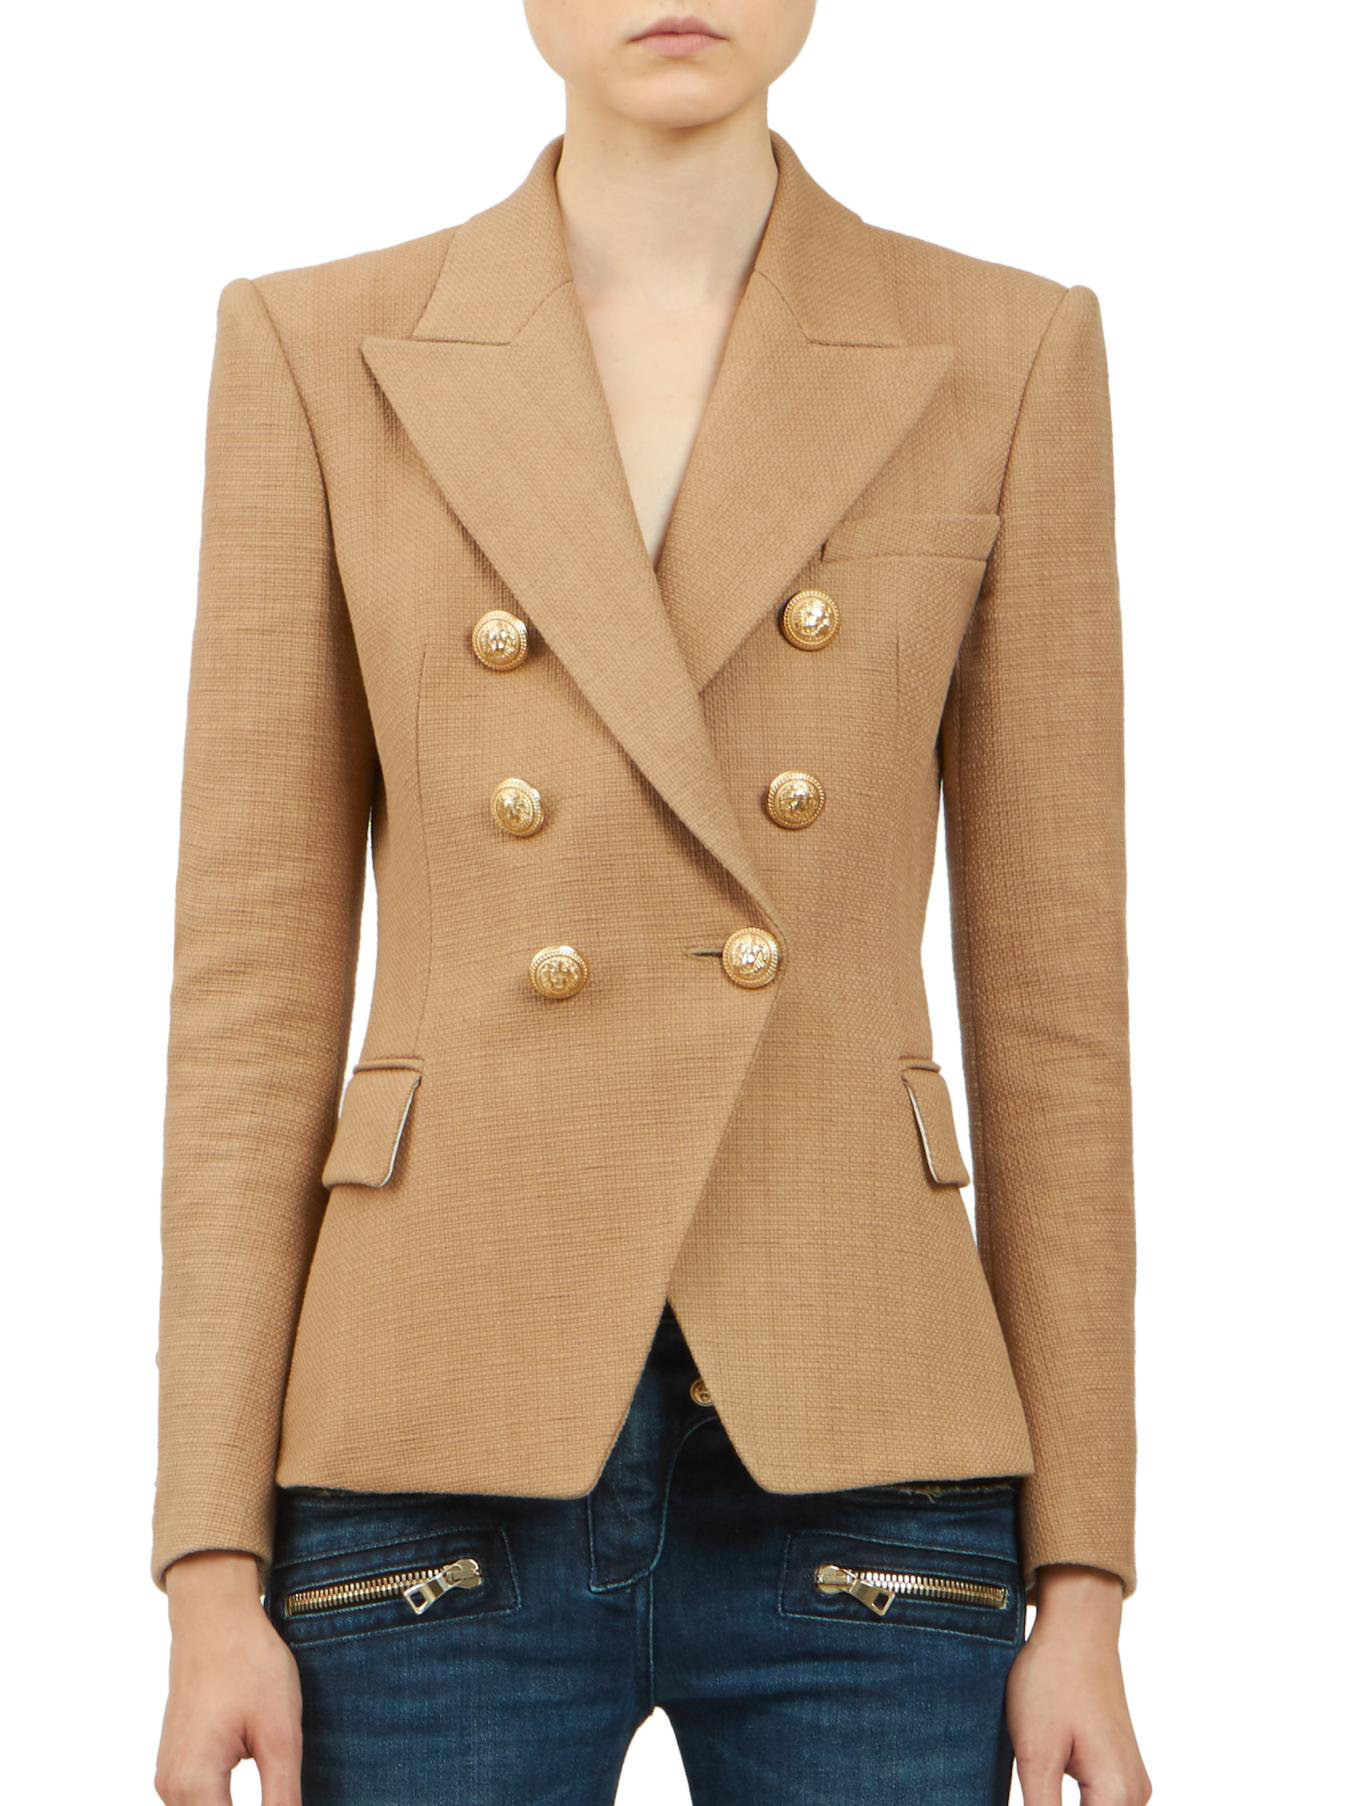 Balmain Double Breasted Blazer | Balmain Leather Jacket | Womens Double Breasted Blazer